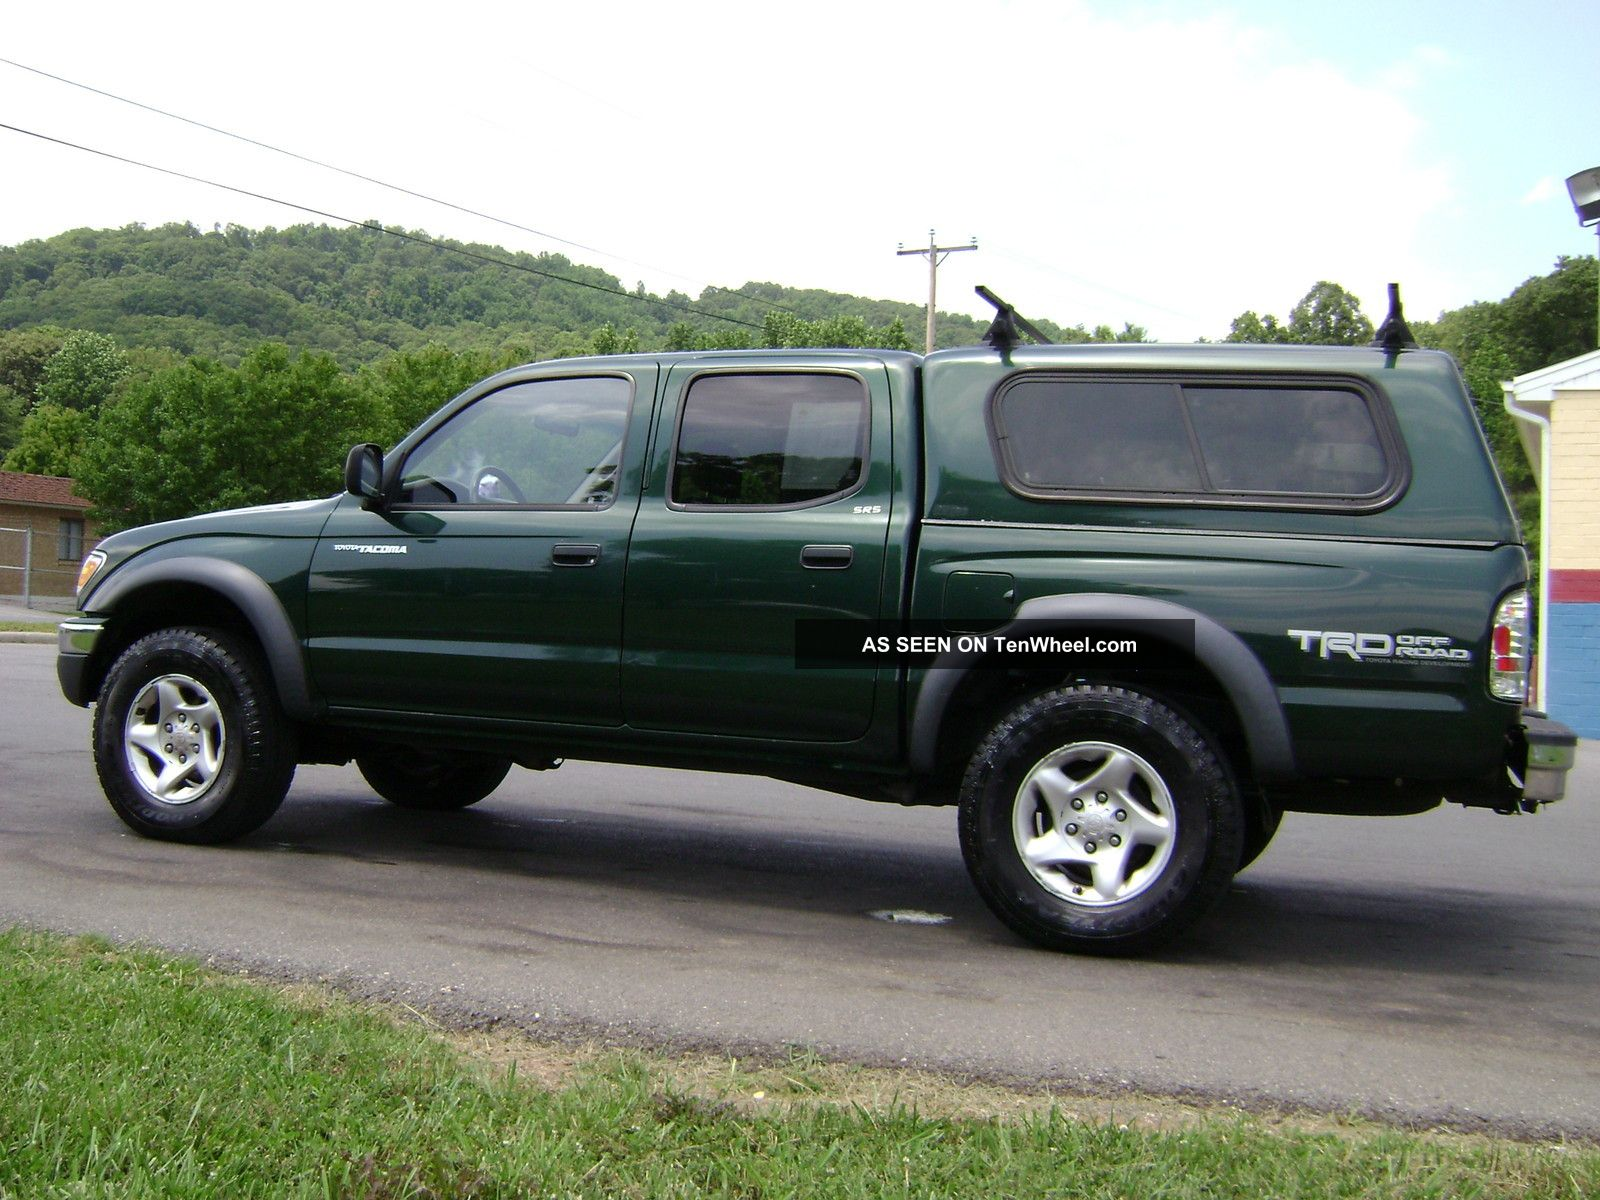 2001 toyota tacoma double cab 4x4 sr5 v6. Black Bedroom Furniture Sets. Home Design Ideas